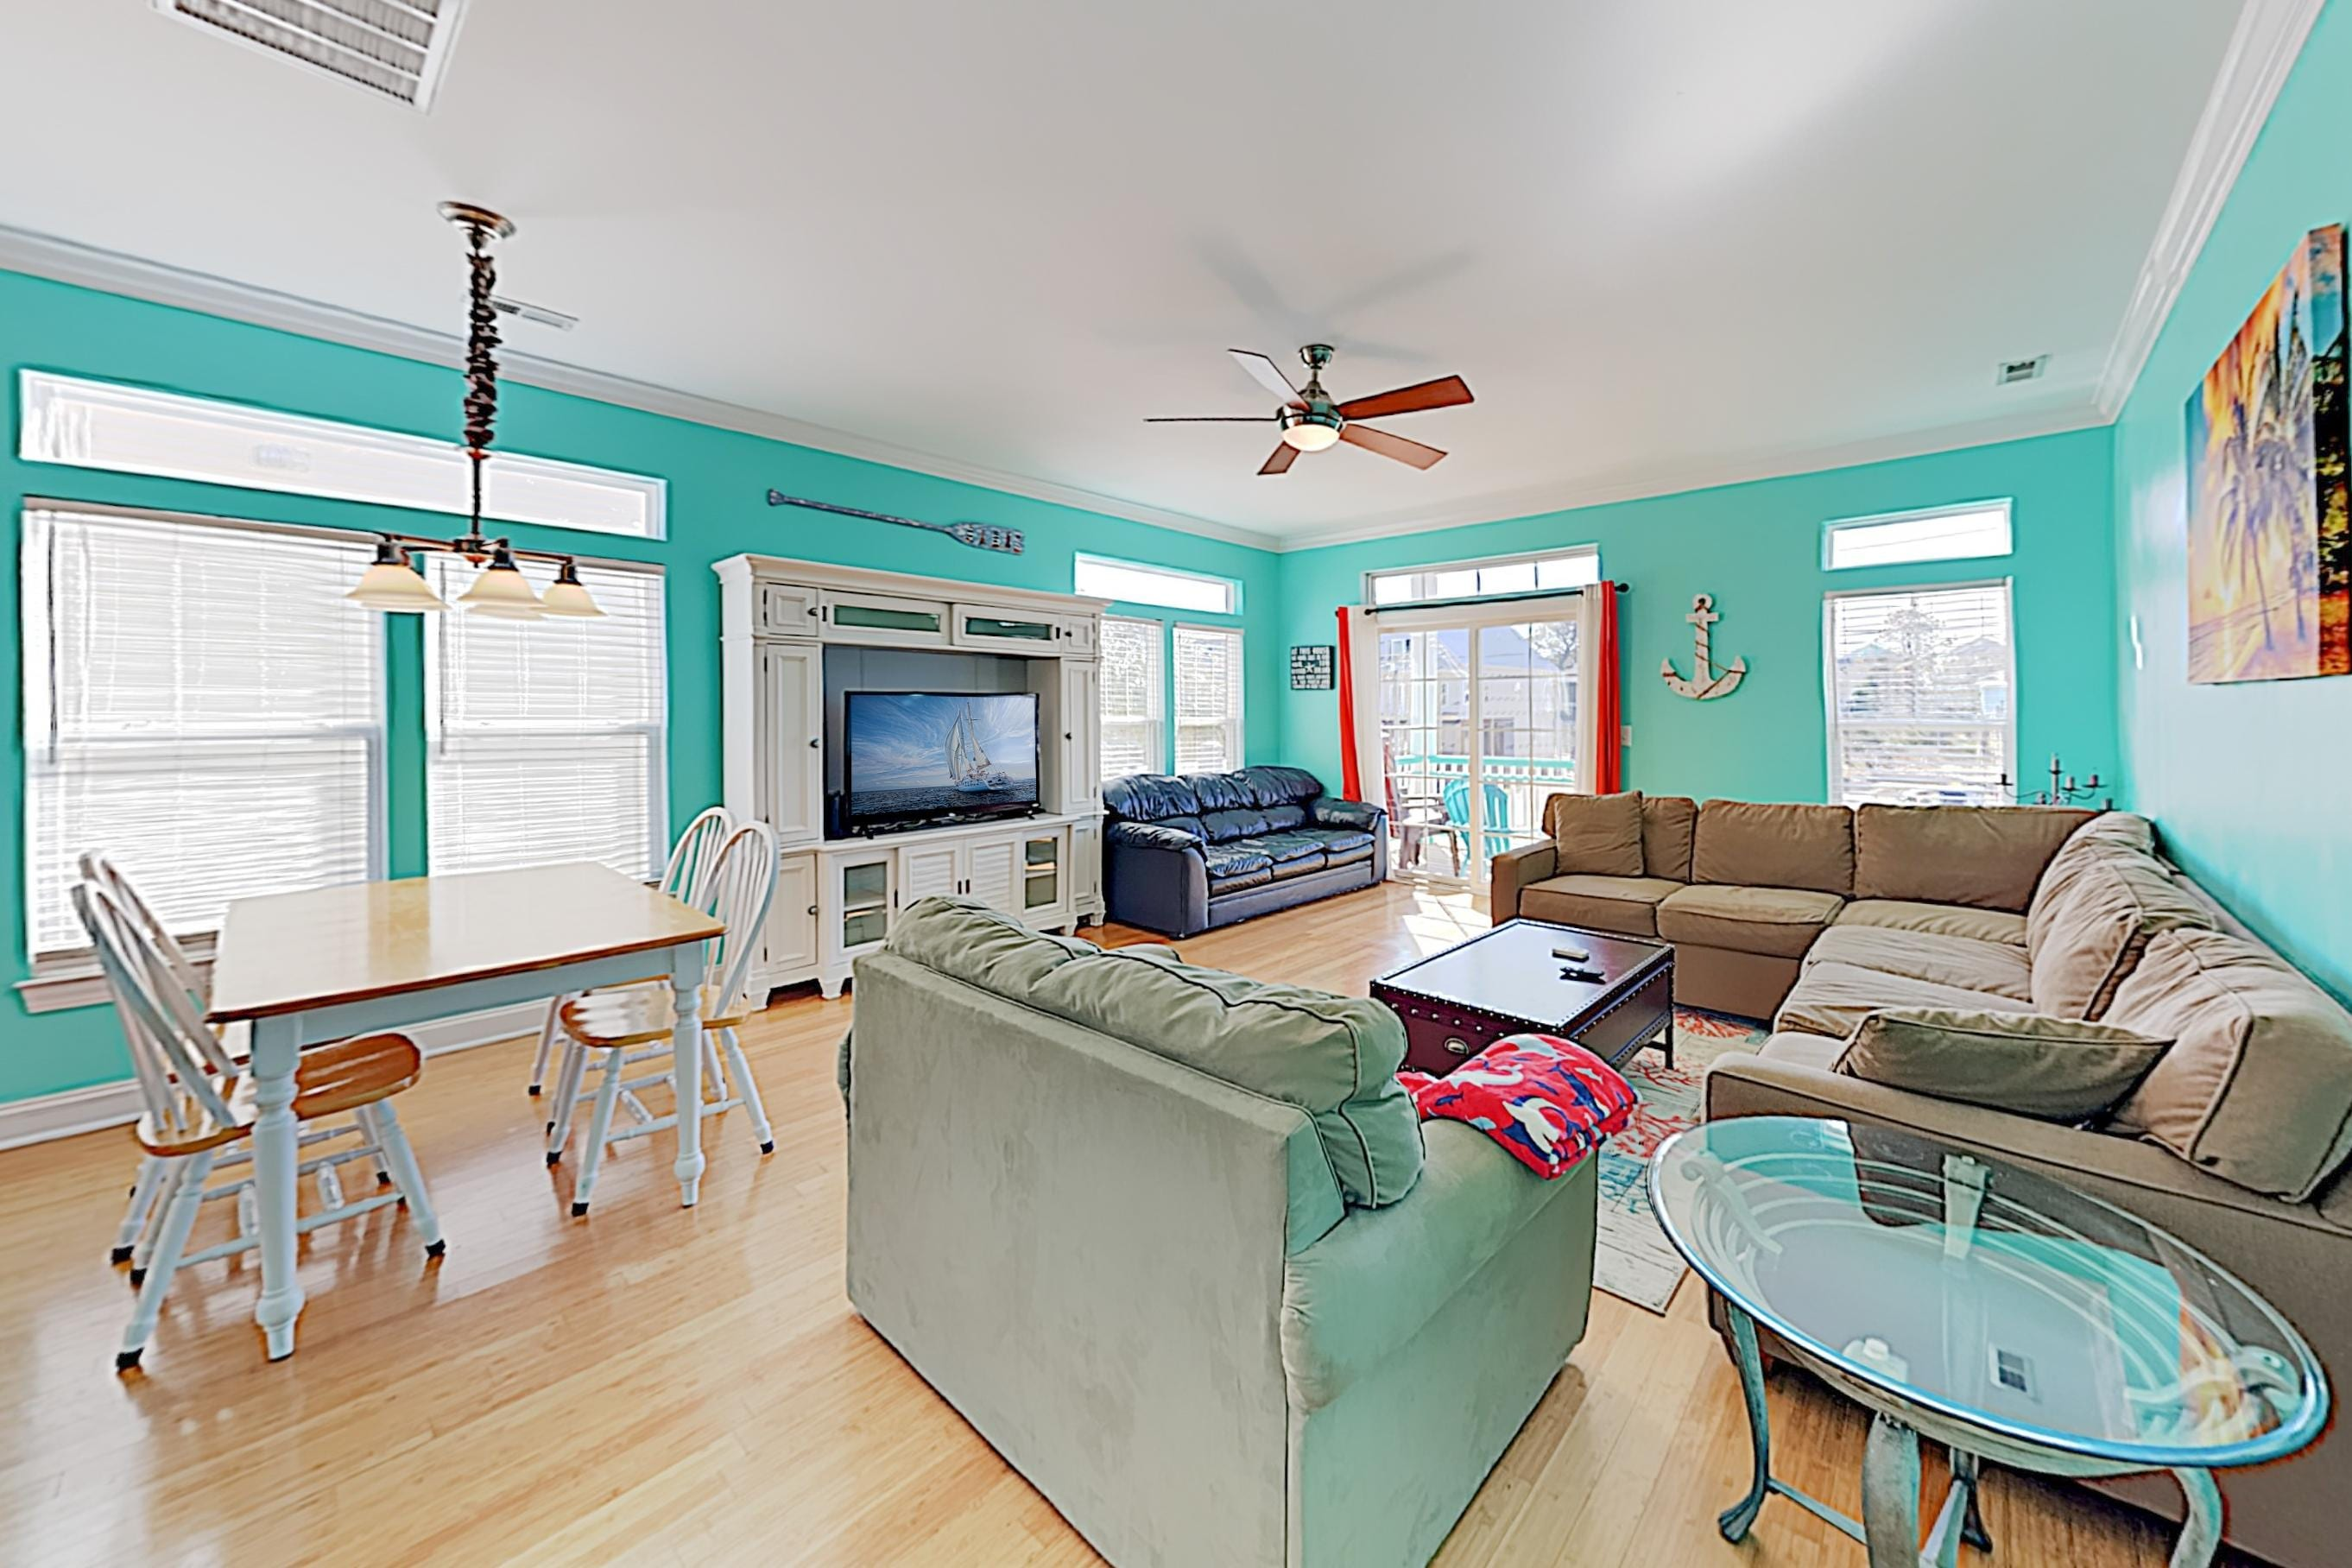 Welcome to Carolina Beach! This townhome is professionally managed by TurnKey Vacation Rentals.